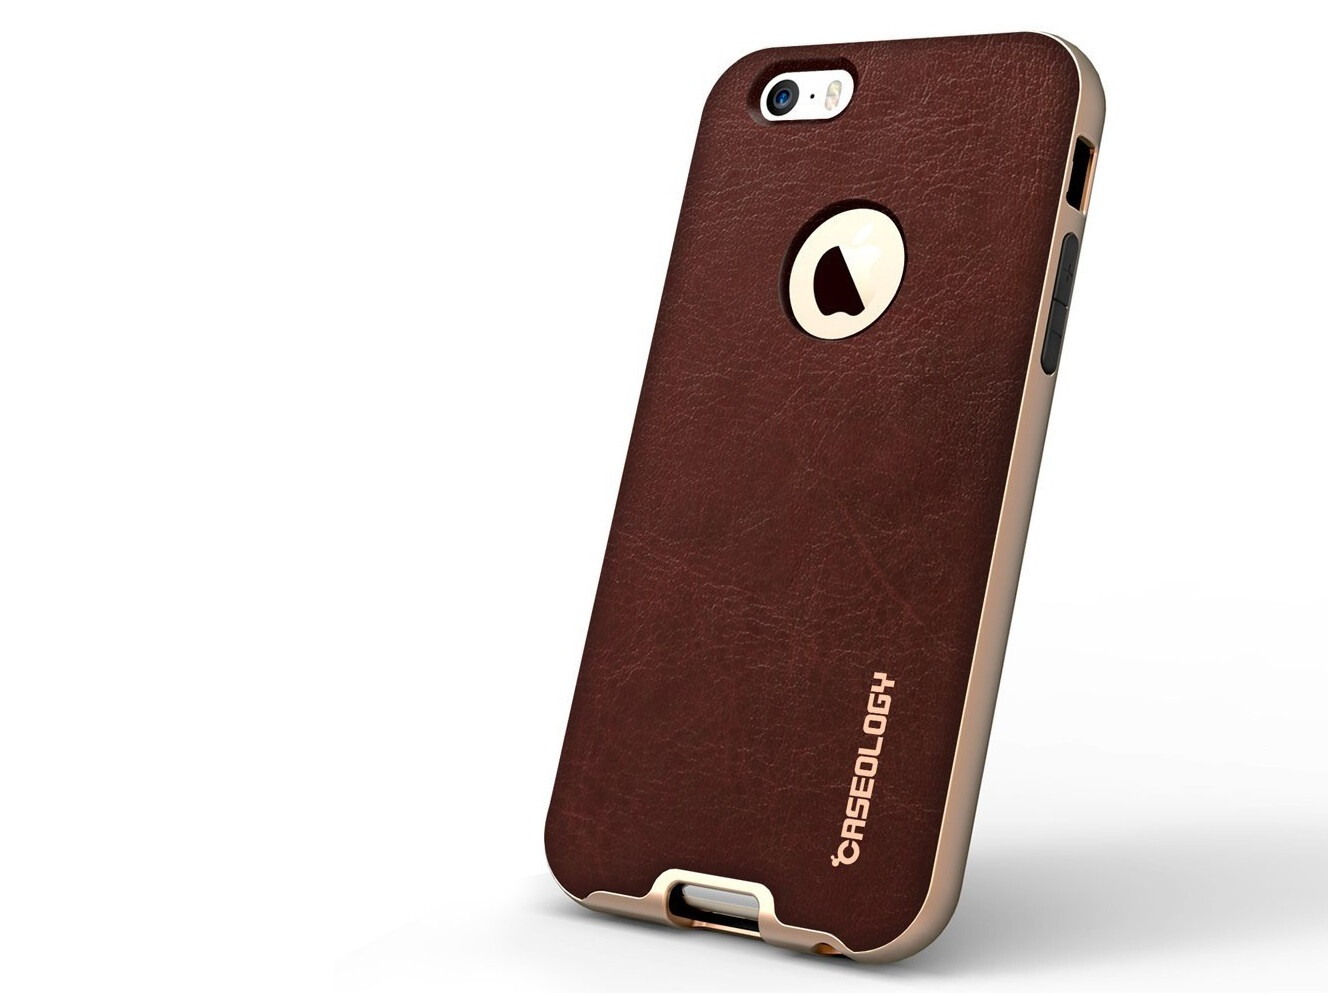 iphone 6 leather cases 10 best leather cases for the iphone 6 part deux 6688